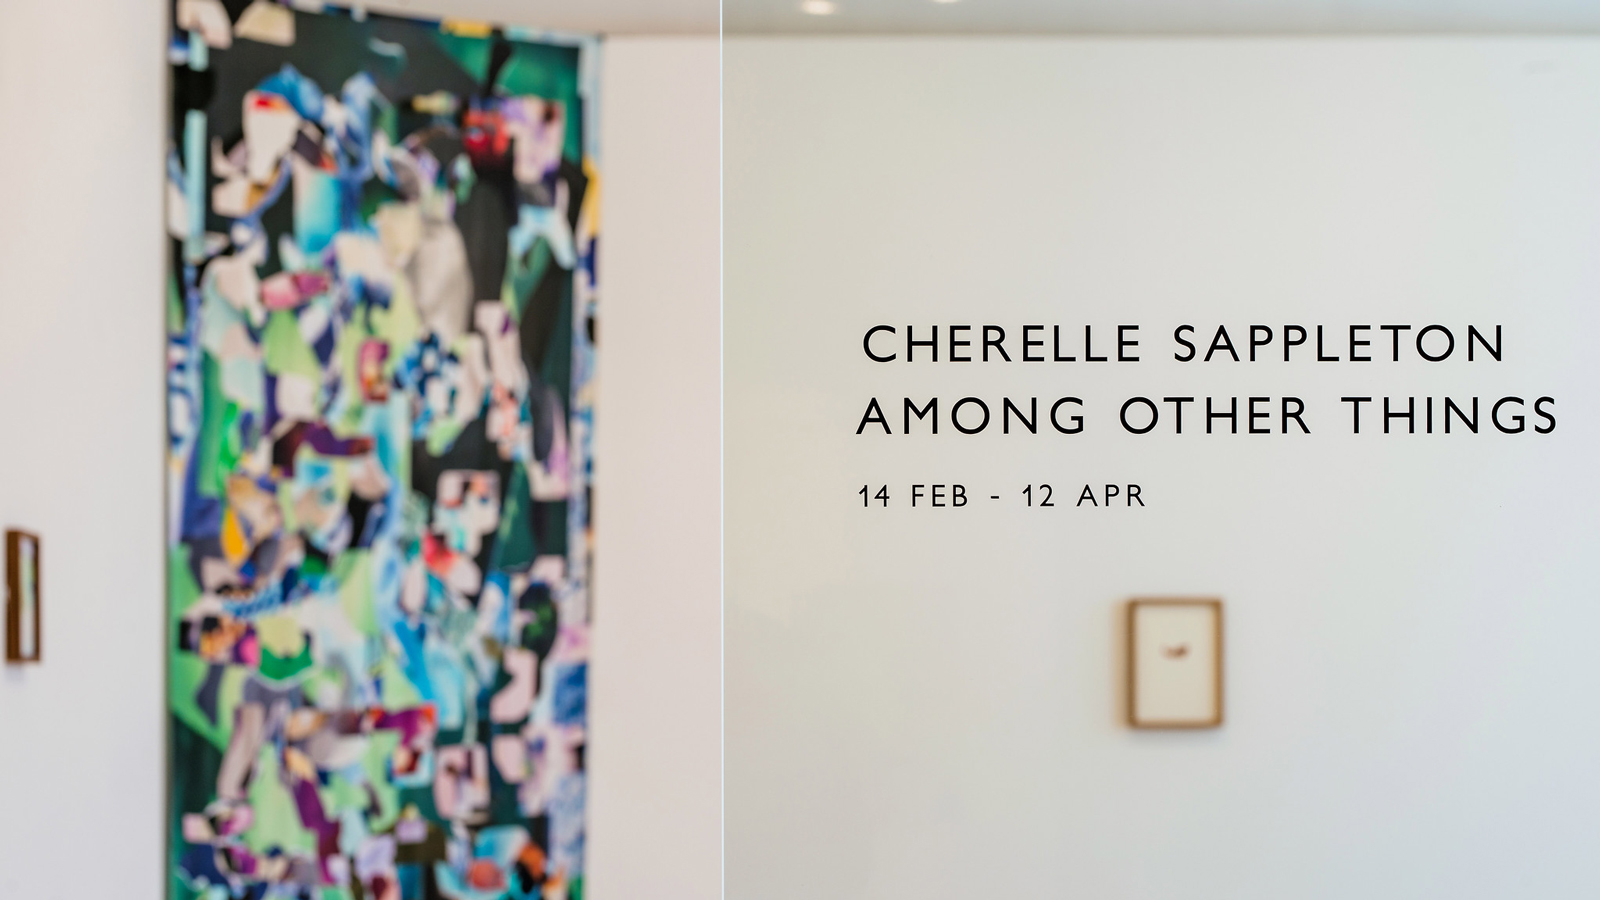 The view through the gallery doors into an exhibition of artworks by Cherelle Sappleton